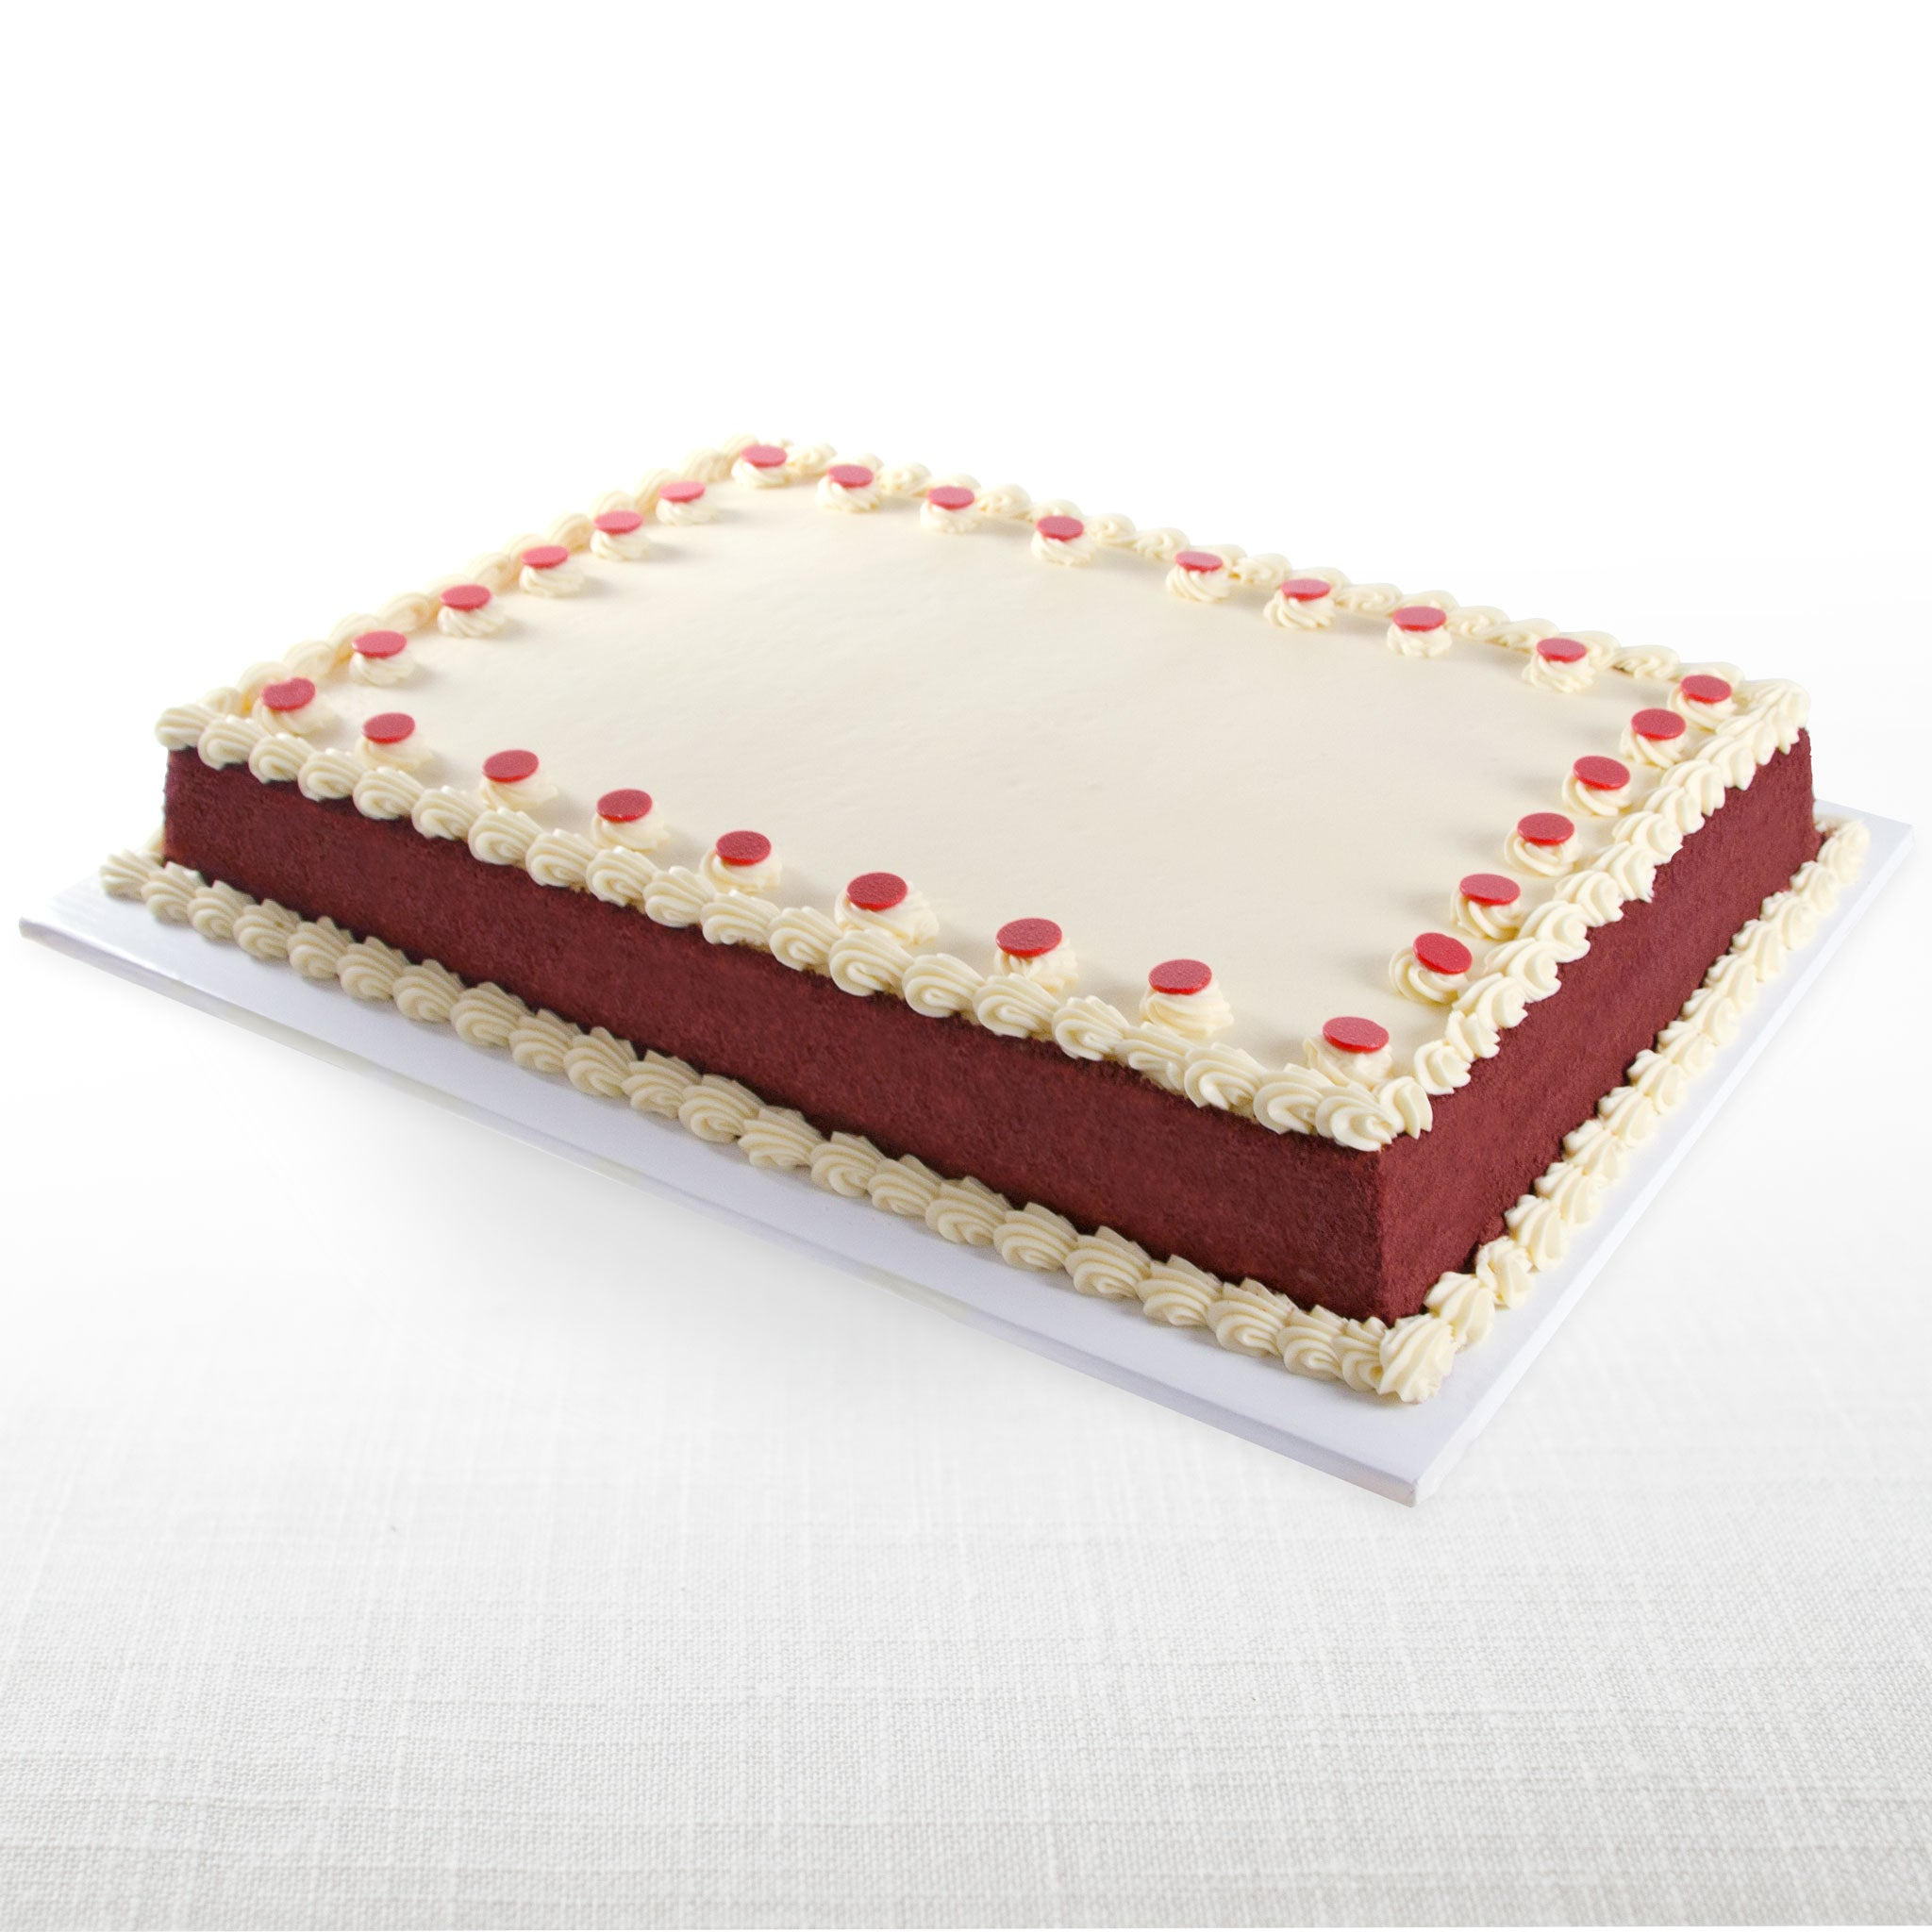 La Rocca Red Velvet Celebration Cake